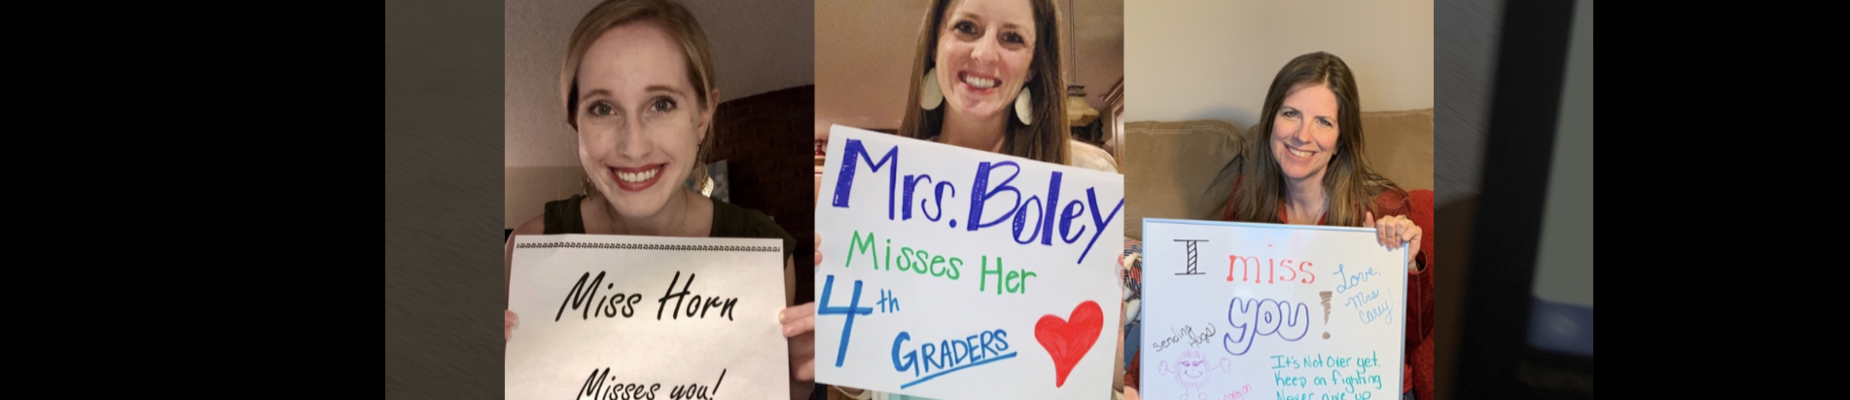 3 teachers holding I miss you signs